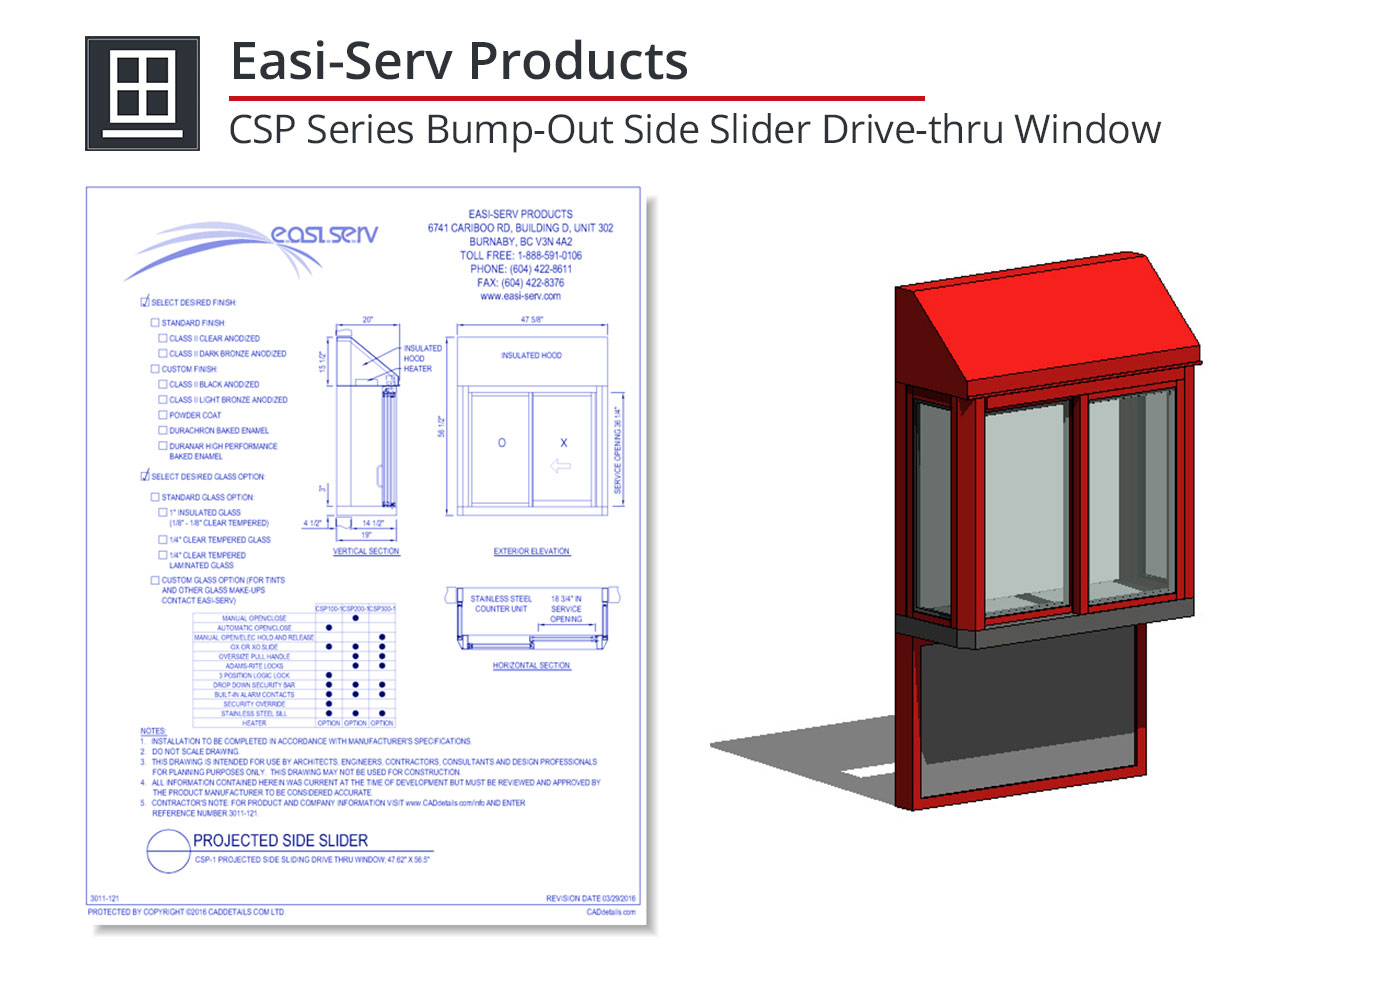 3011-121 CSP Series Bump=Out Side Slider Drive-thru Window